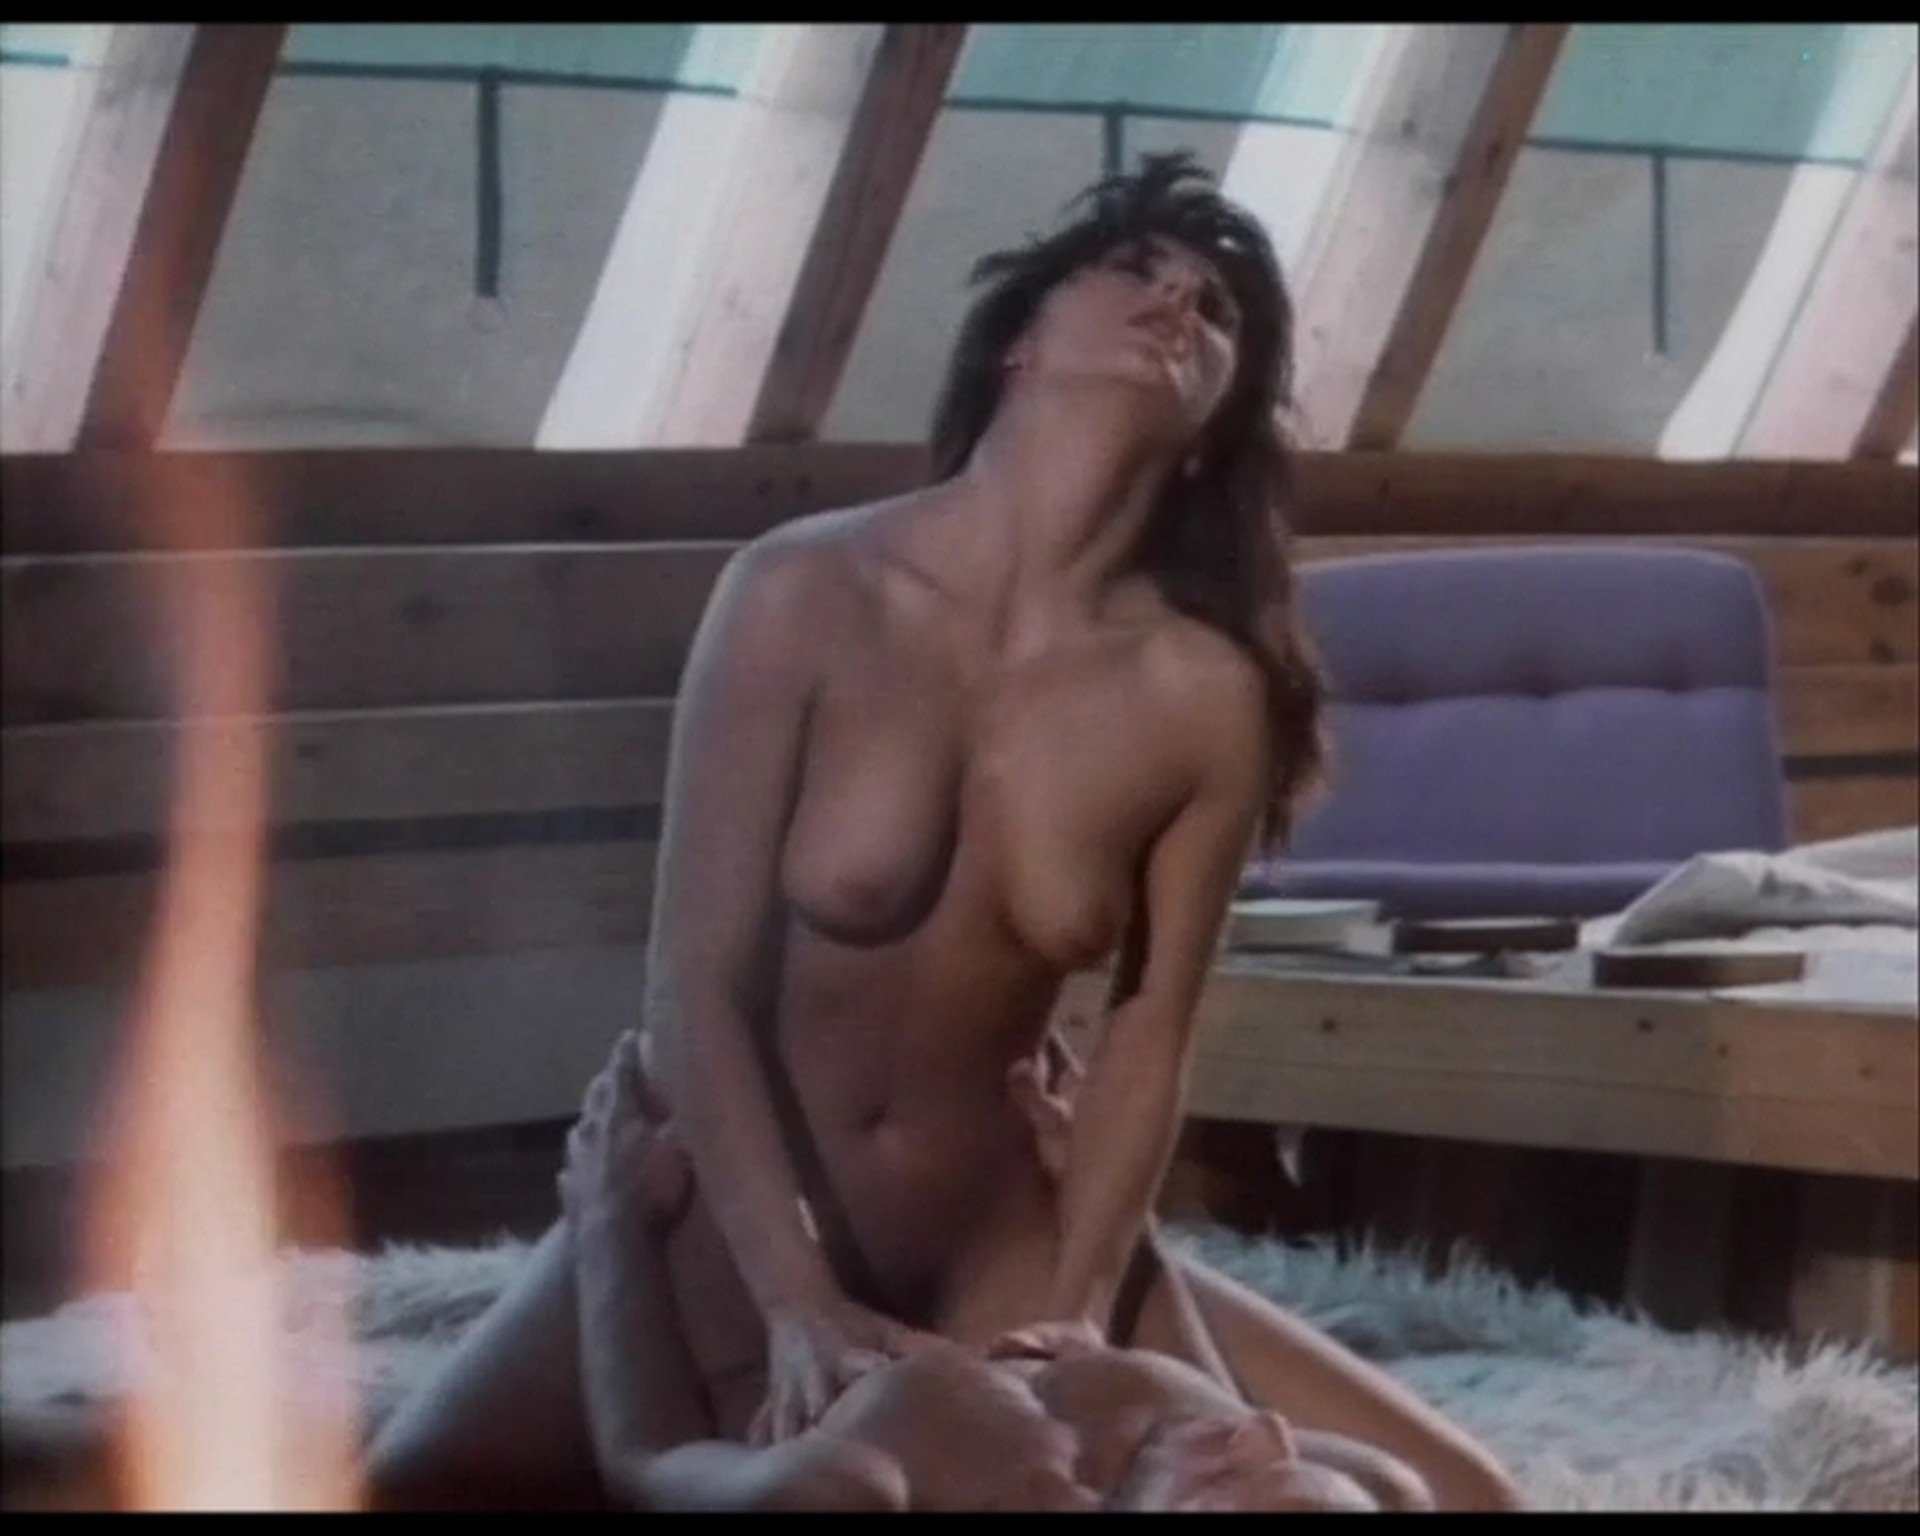 Malu nude full frontal Angeles Lopez Barea nude sex Scent of Passion 1991 012